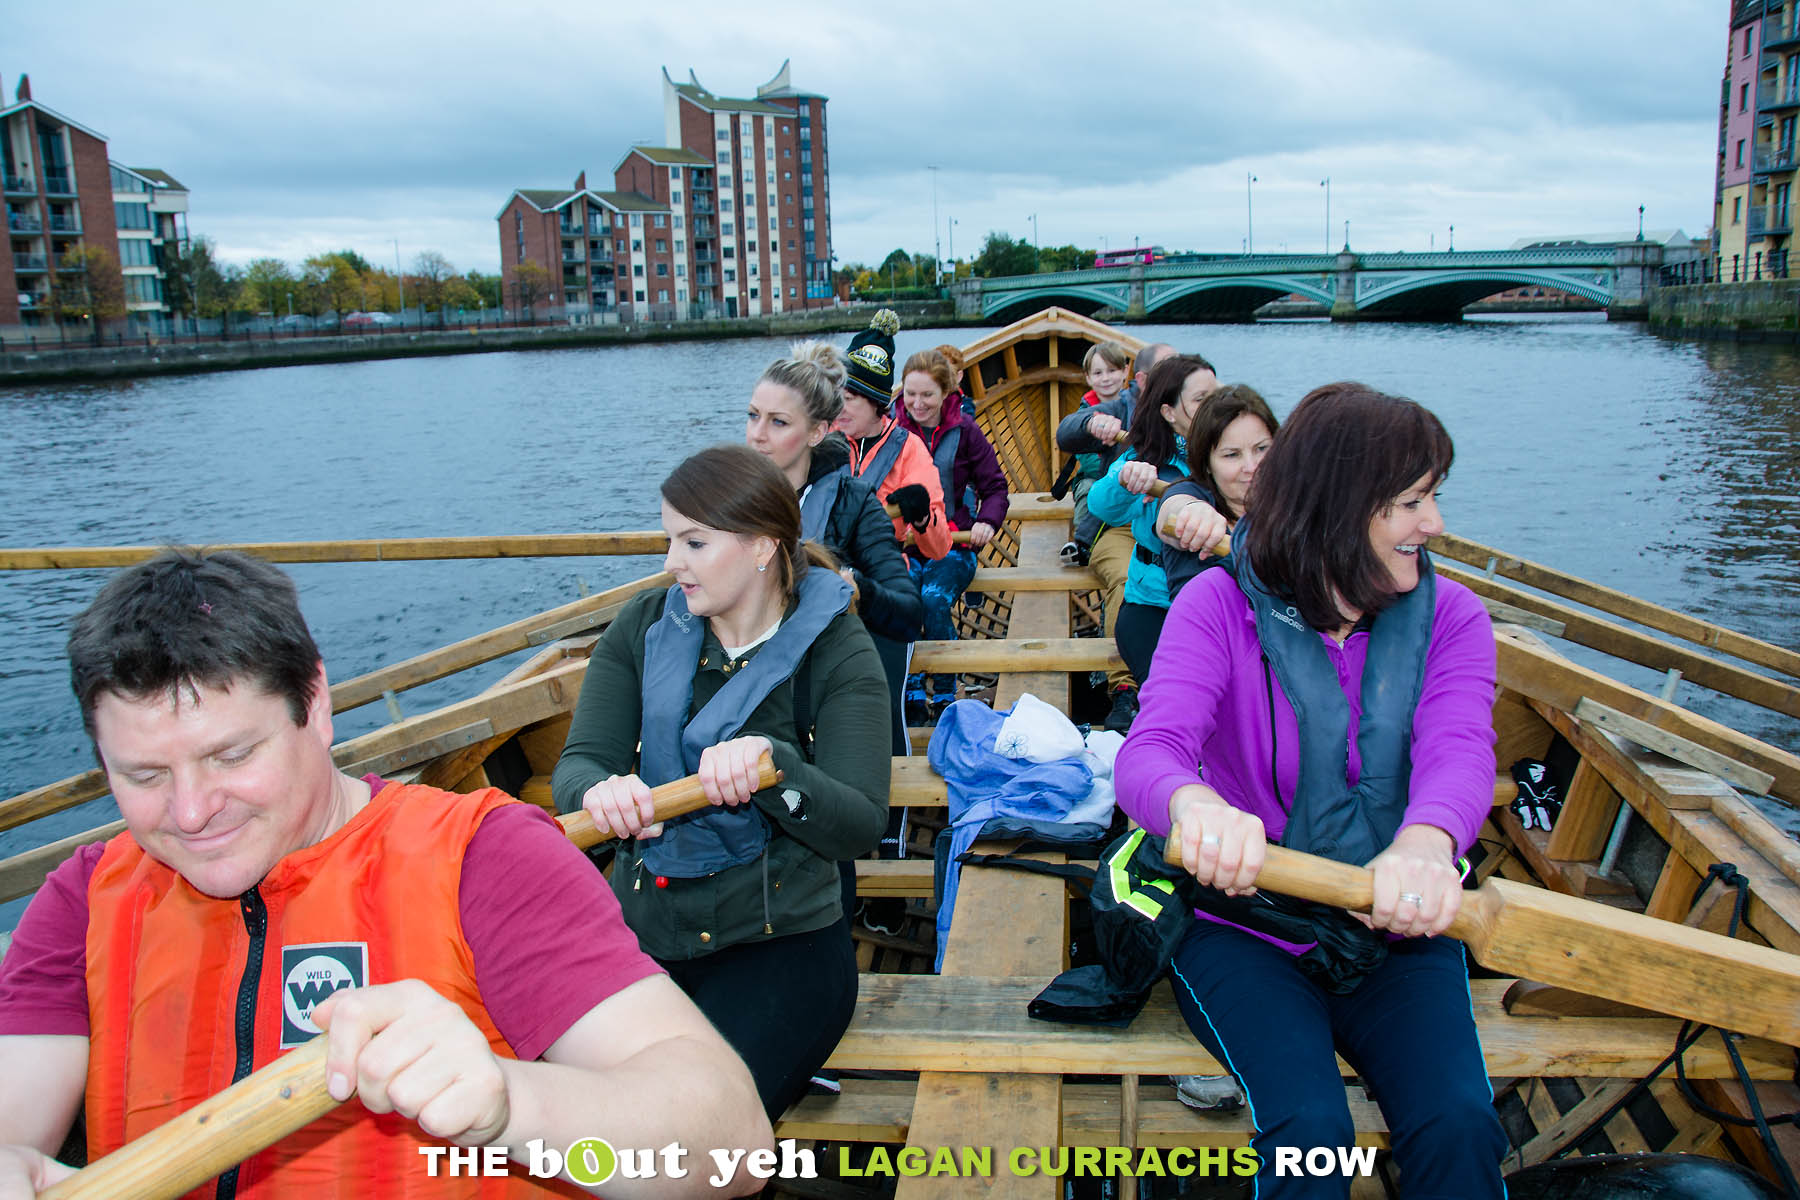 Enjoying a row during the Bout yeh Lagan Currachs row - photo 9209.